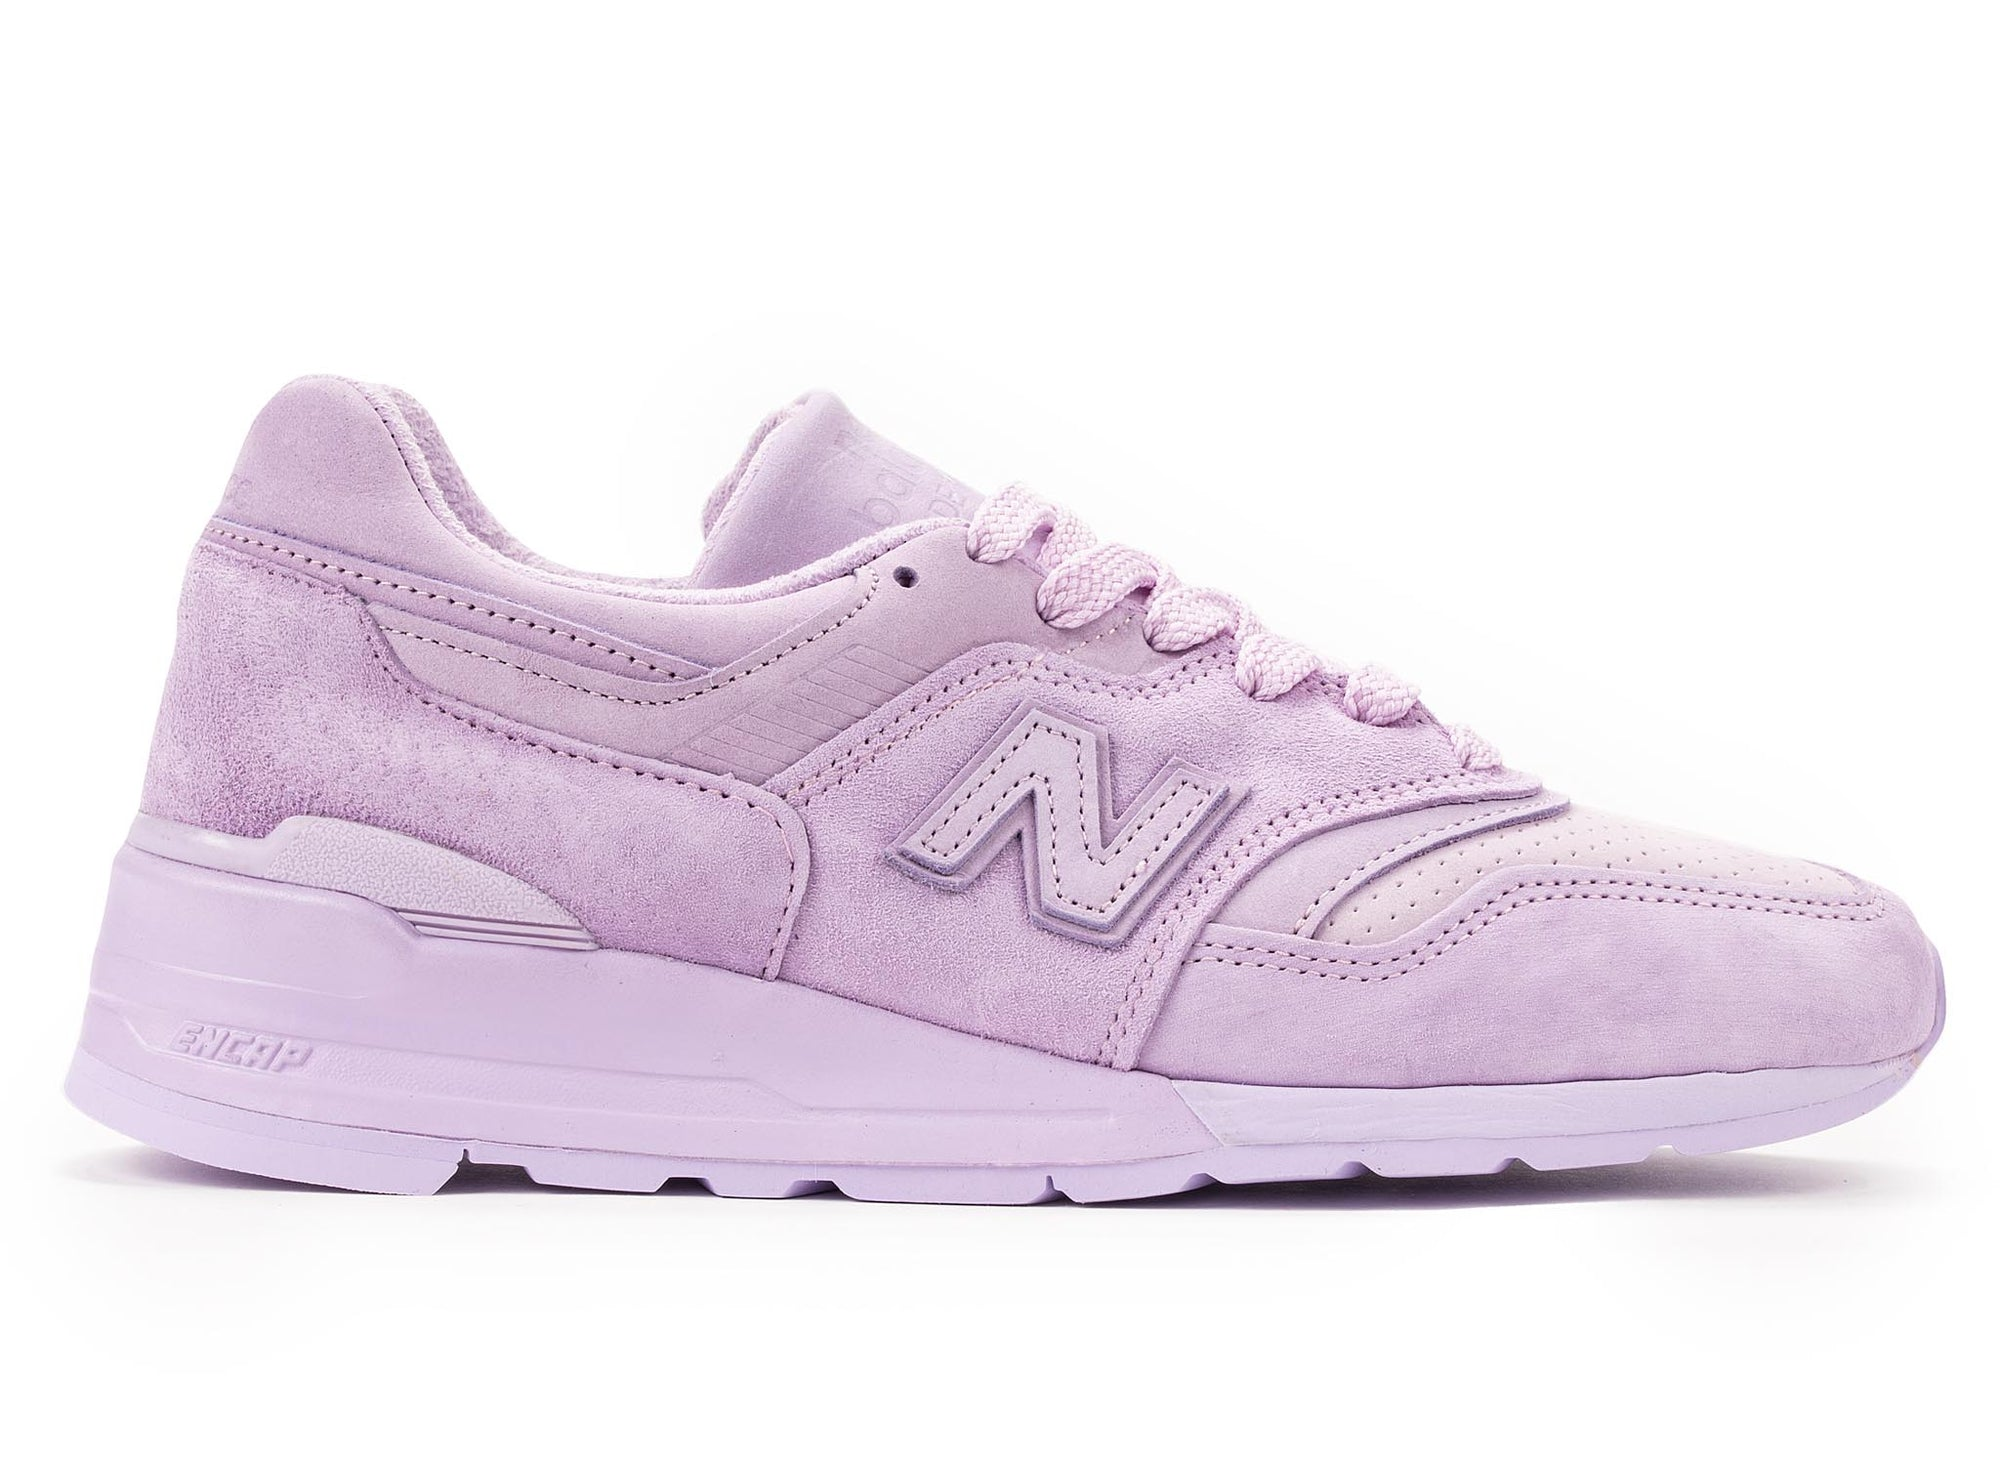 New Balance Men's 997 M997LBF 'English Lavender'